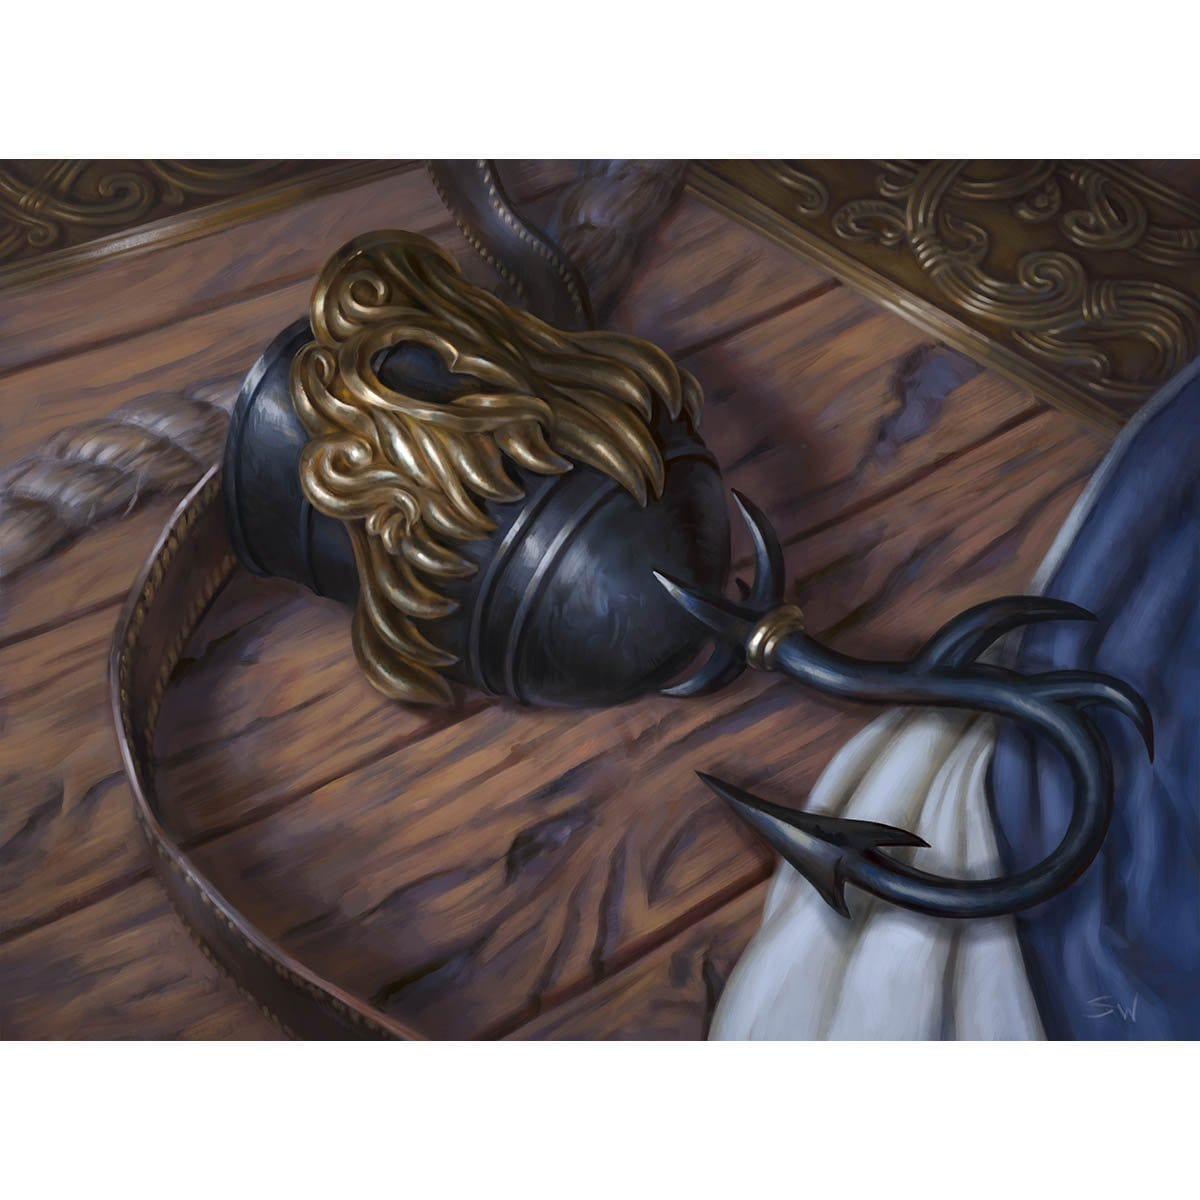 Captain's Hook Print - Print - Original Magic Art - Accessories for Magic the Gathering and other card games